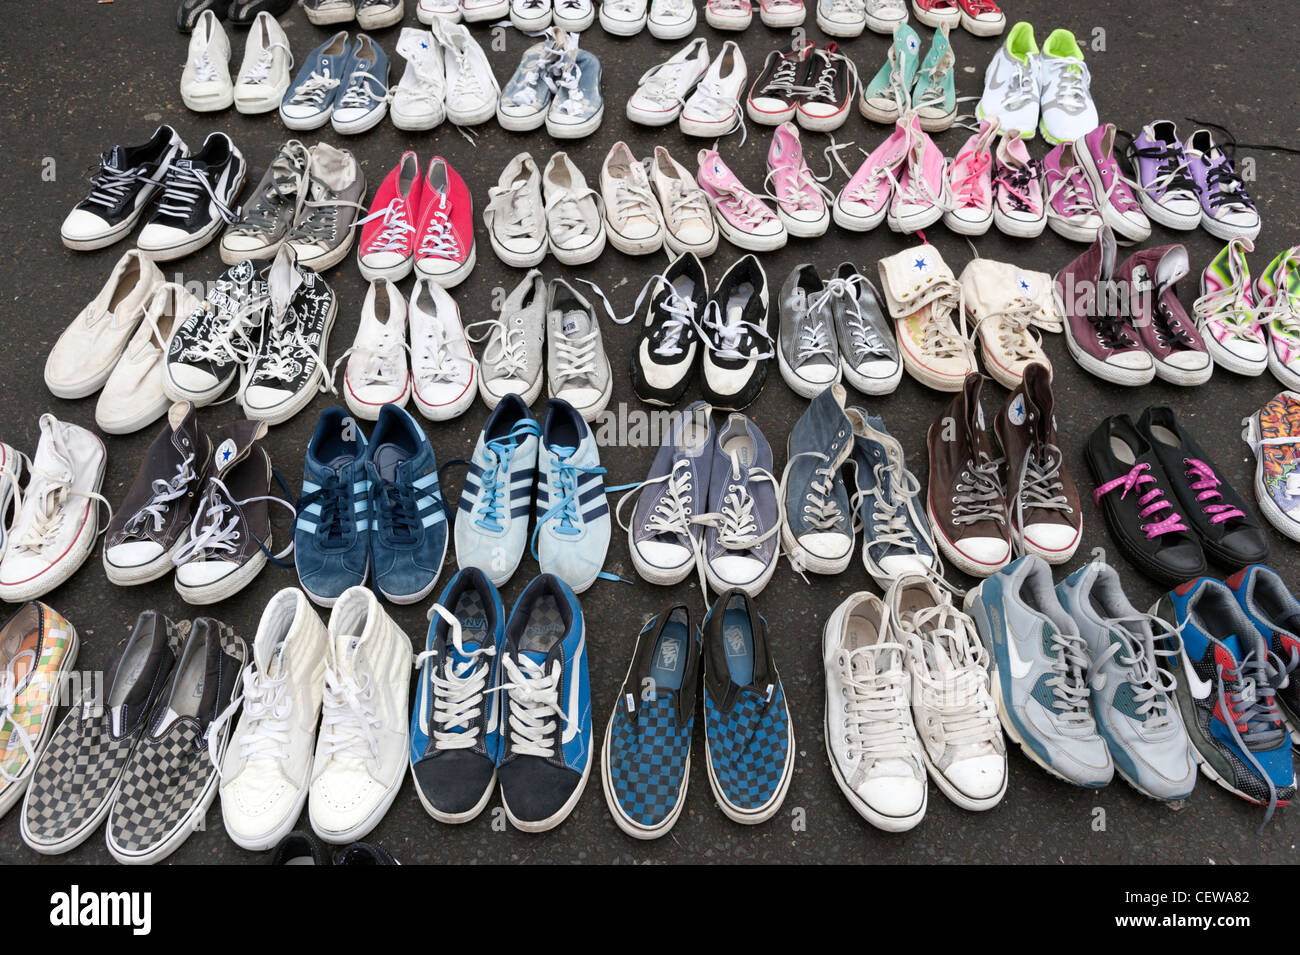 Old secondhand plimsoles for sale on market stall in Brick Lane, London, England, UK - Stock Image